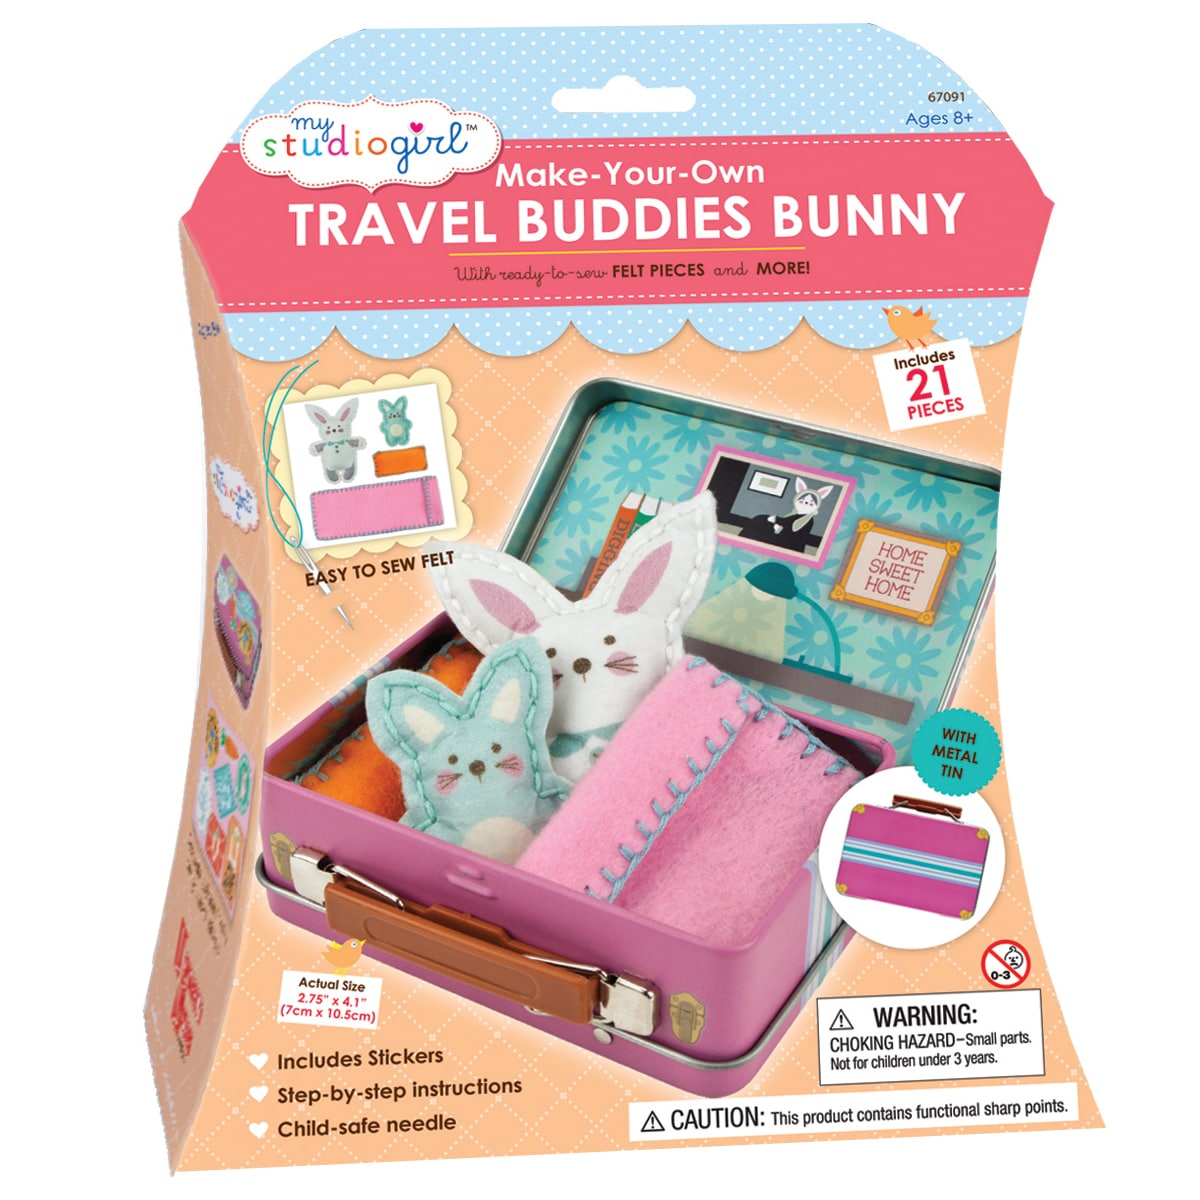 My Studio Girl Make-Your-Own Travel Buddies Bunny